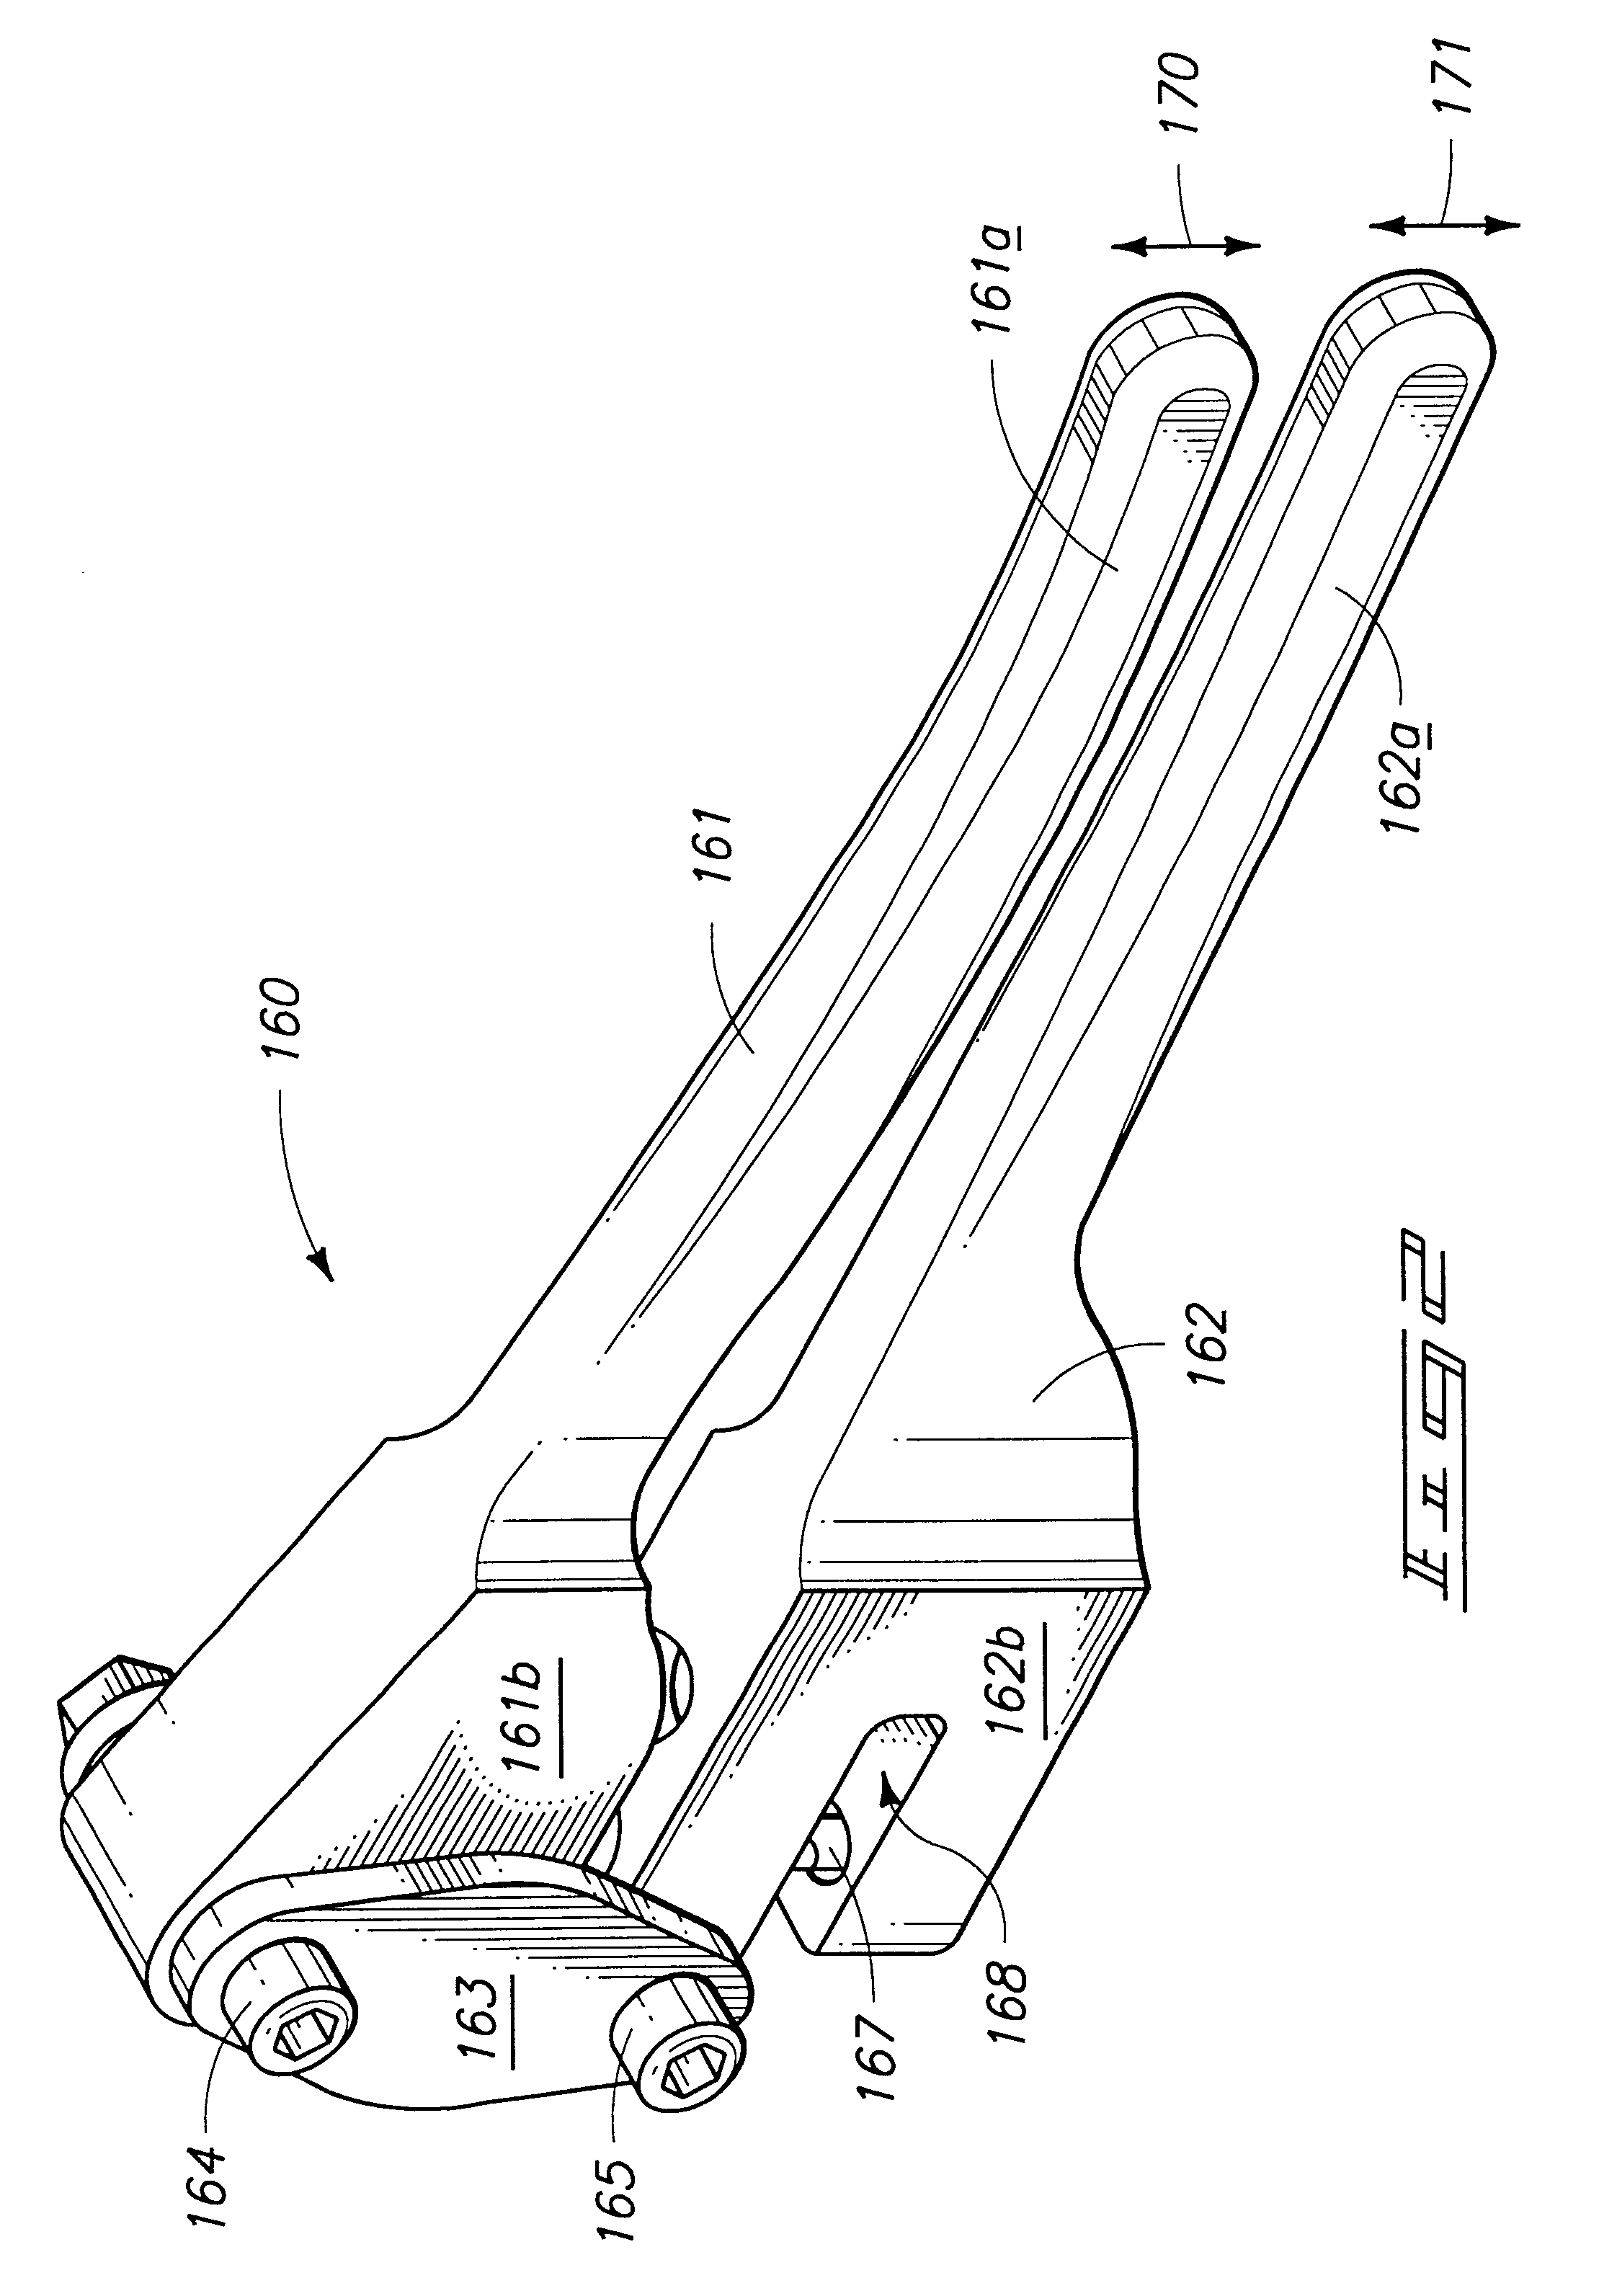 patent us6711930 - fiber optic cable trough component notching system